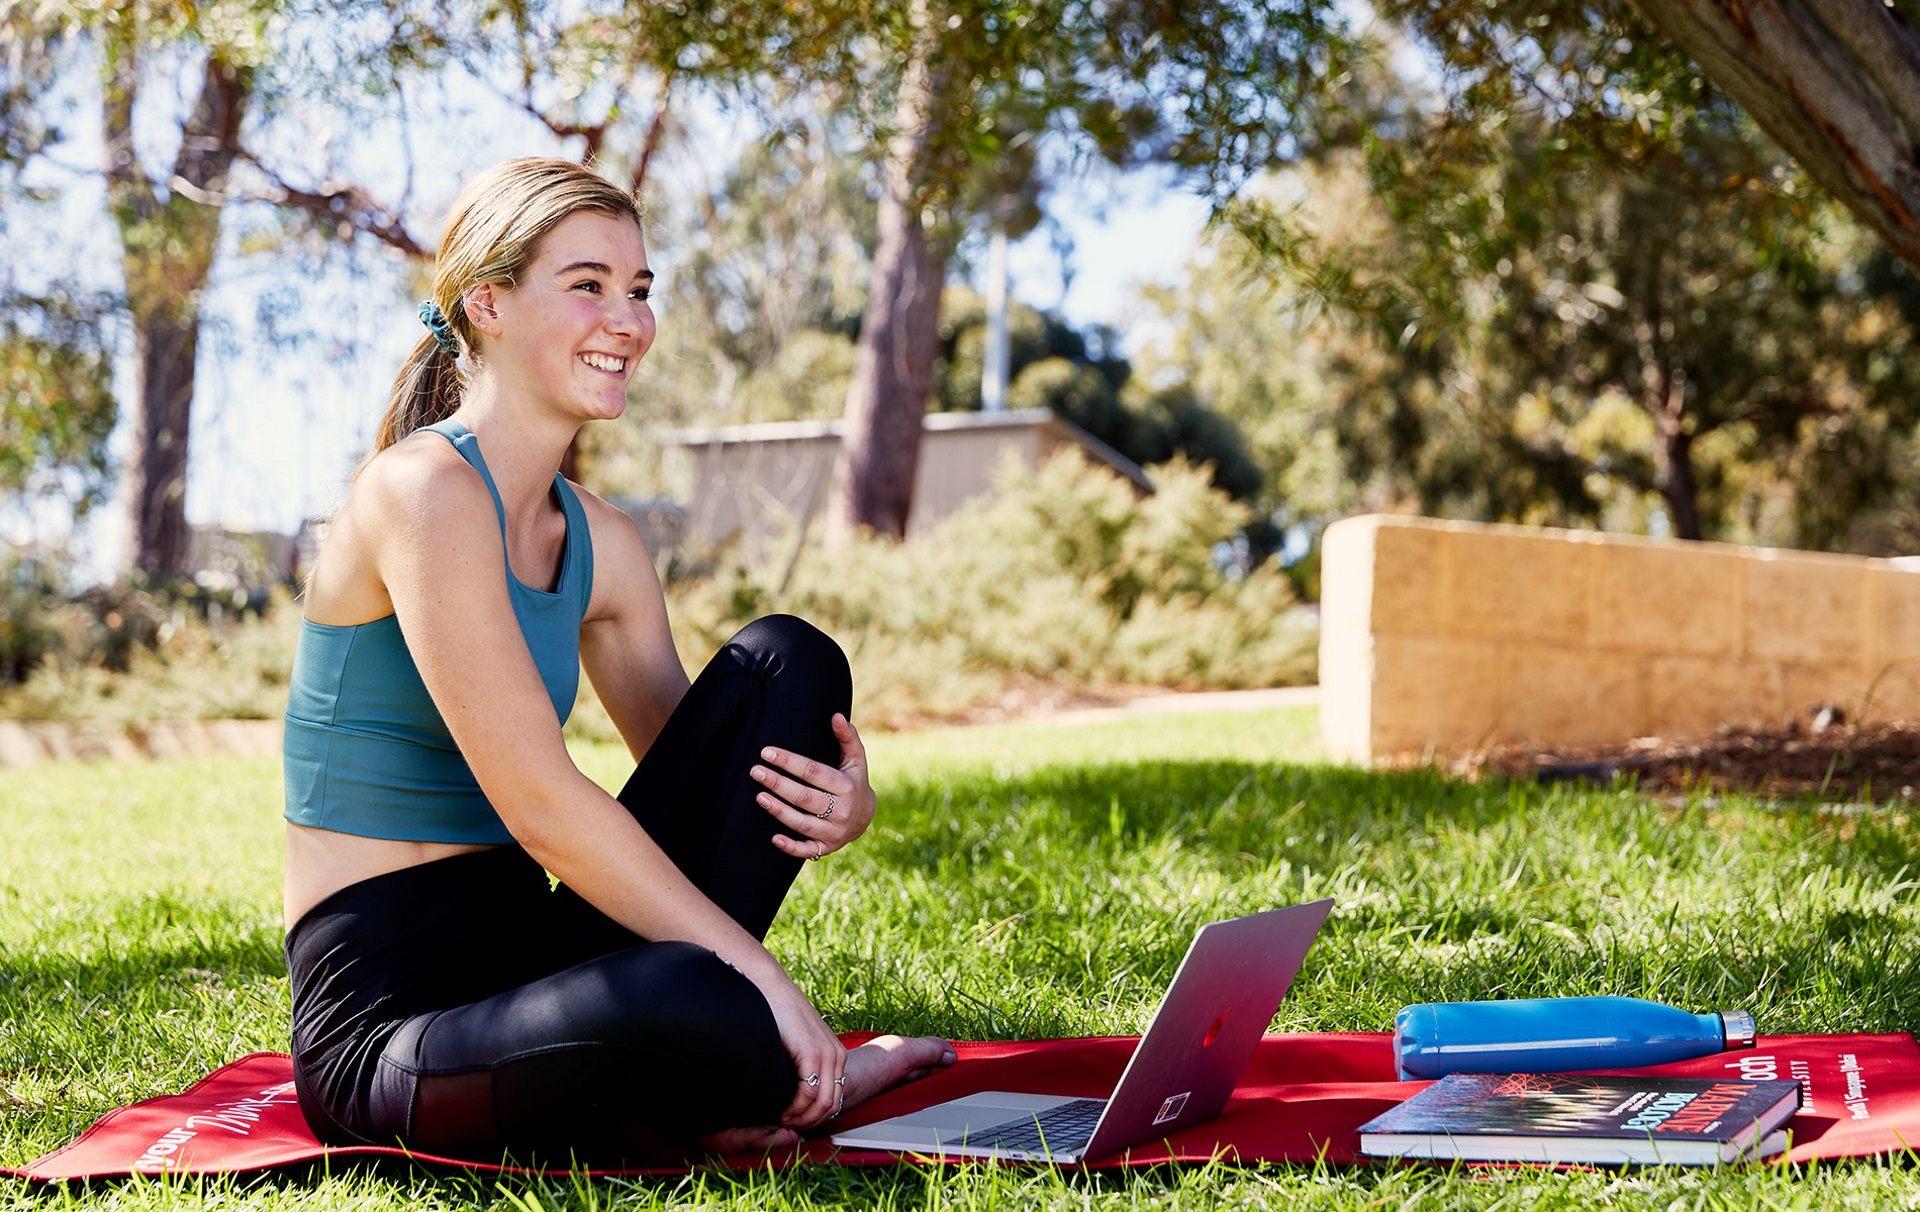 Gabby studying outside on a yoga mat